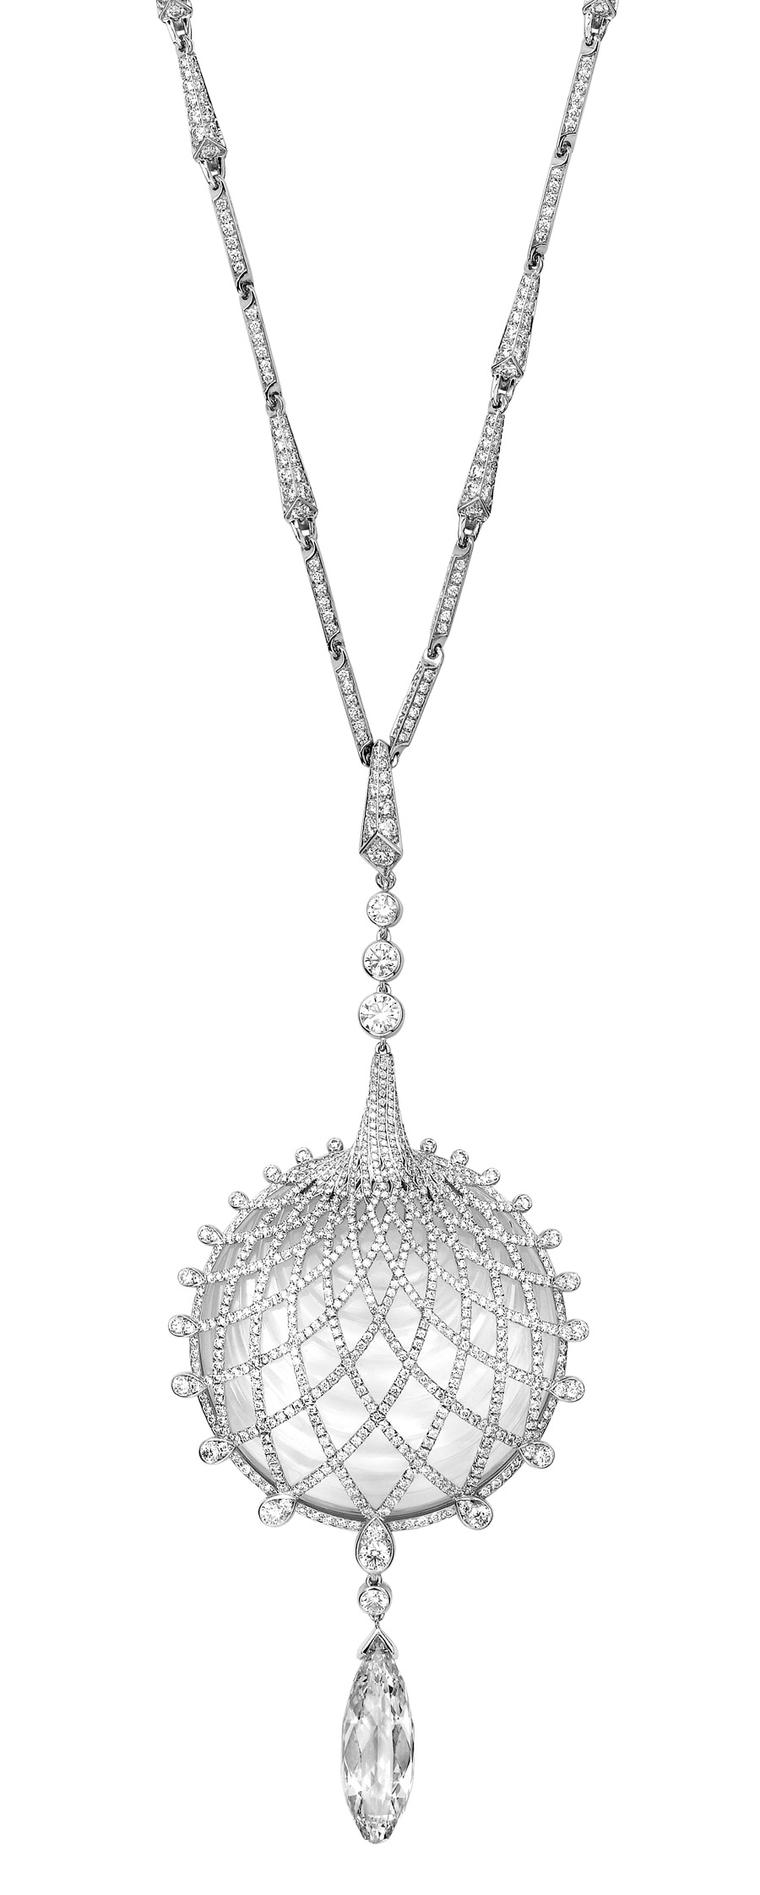 Cartier-Biennale-Necklace